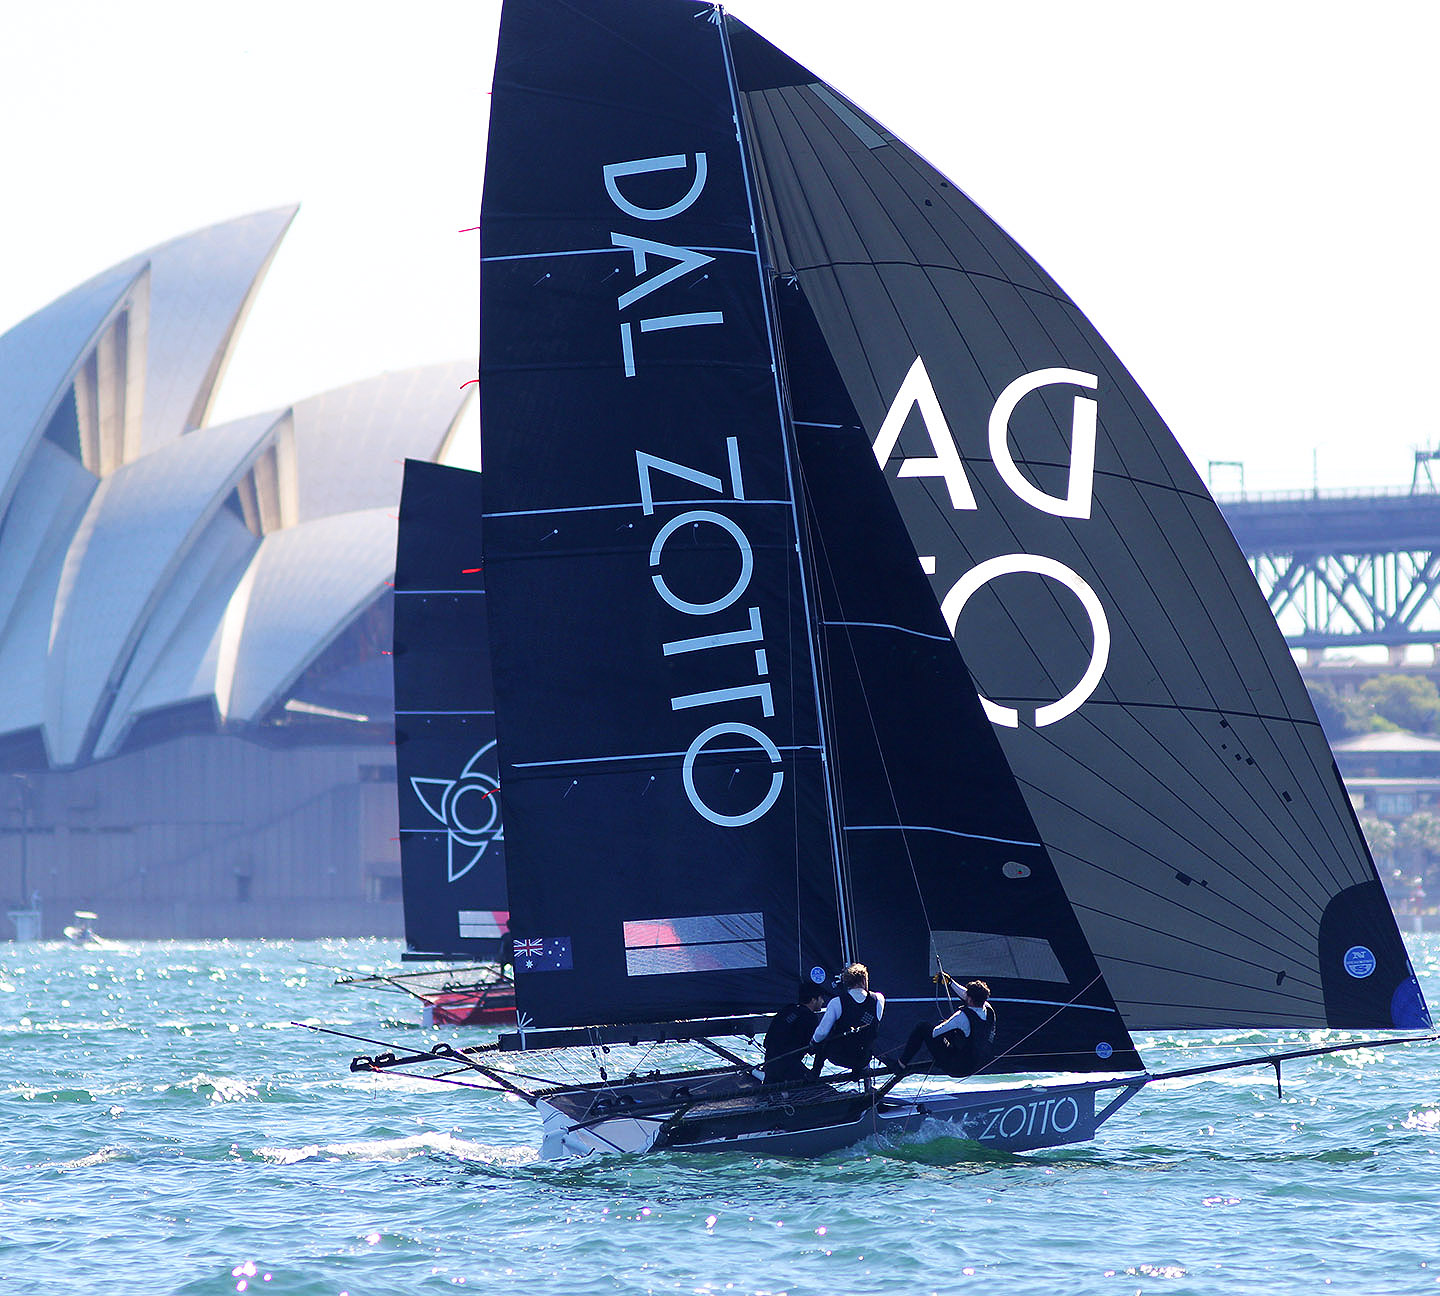 Dal Zotto challenging Noakesailing for the lead last Sunday - Frank Quealey pic